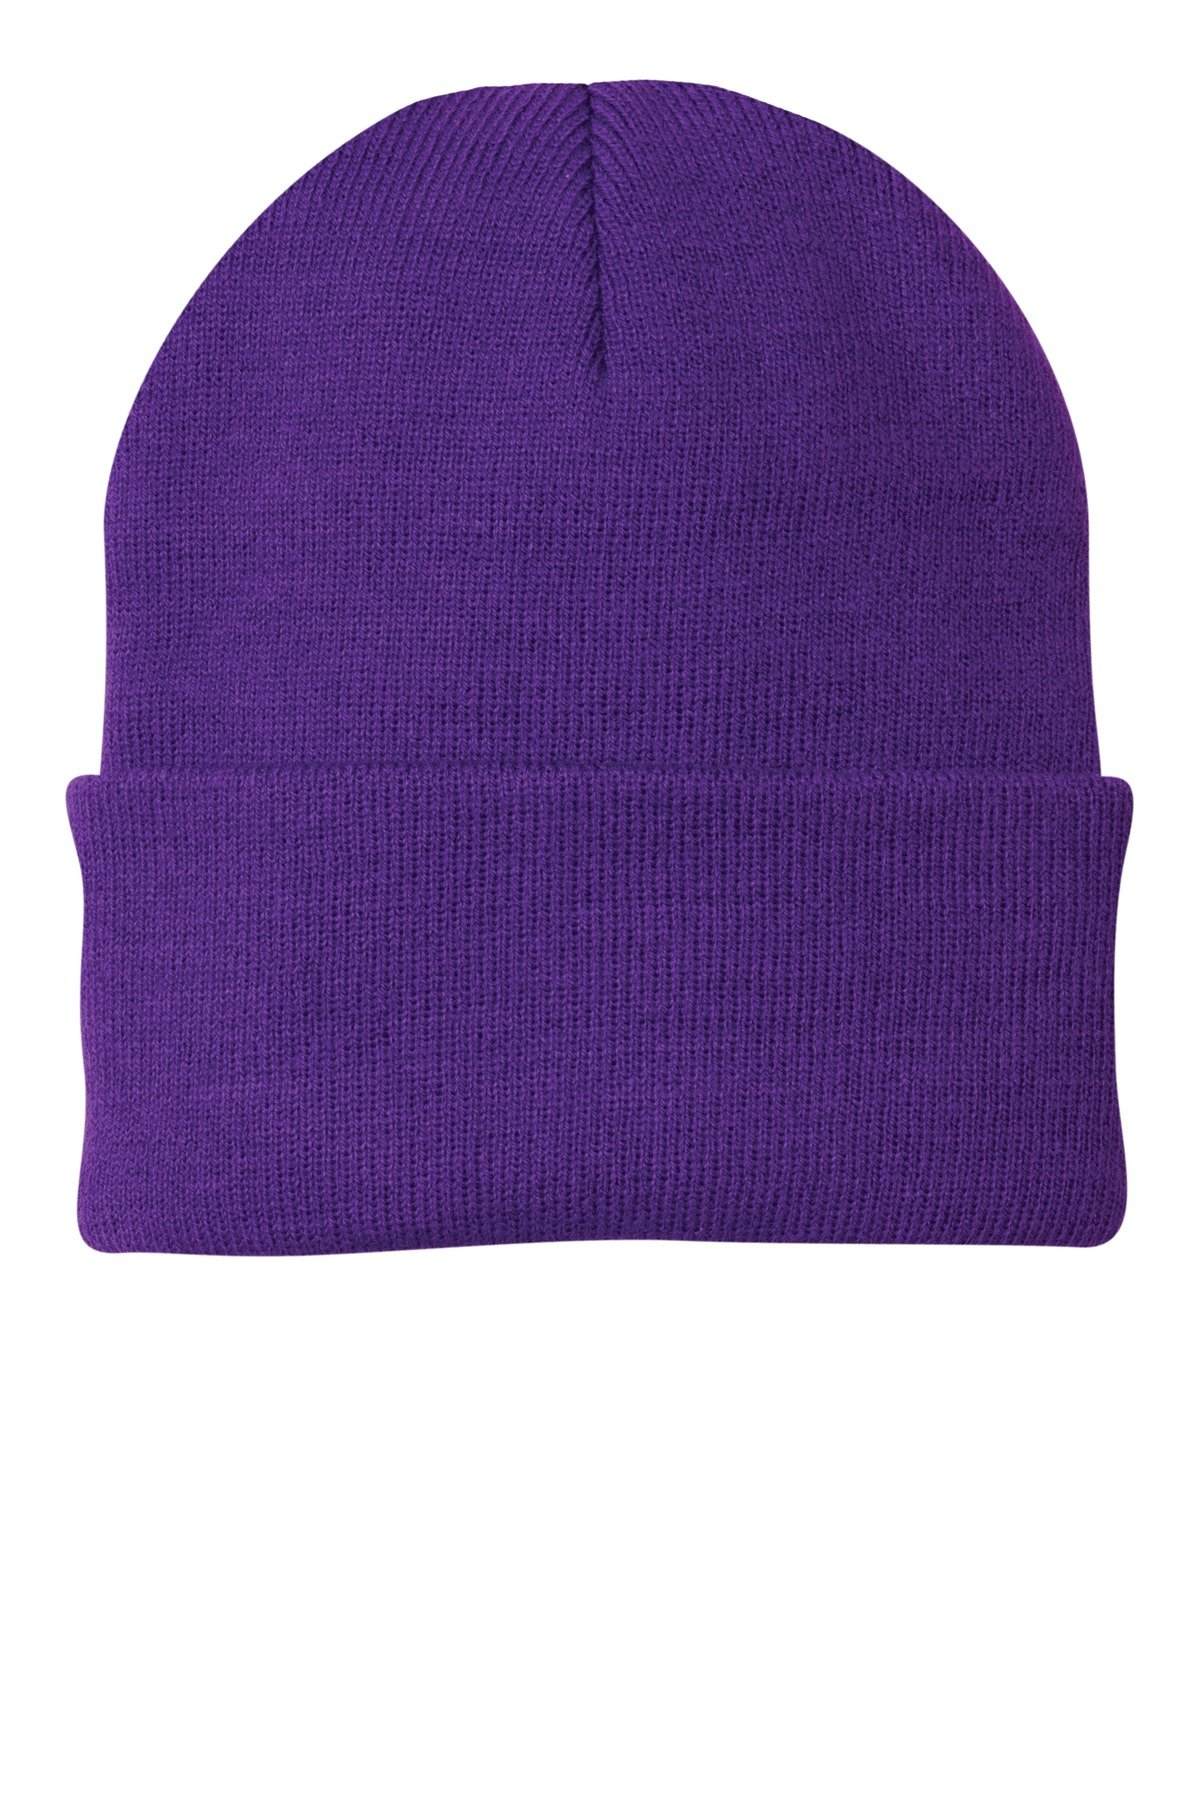 Port & Company Men's Knit Cap